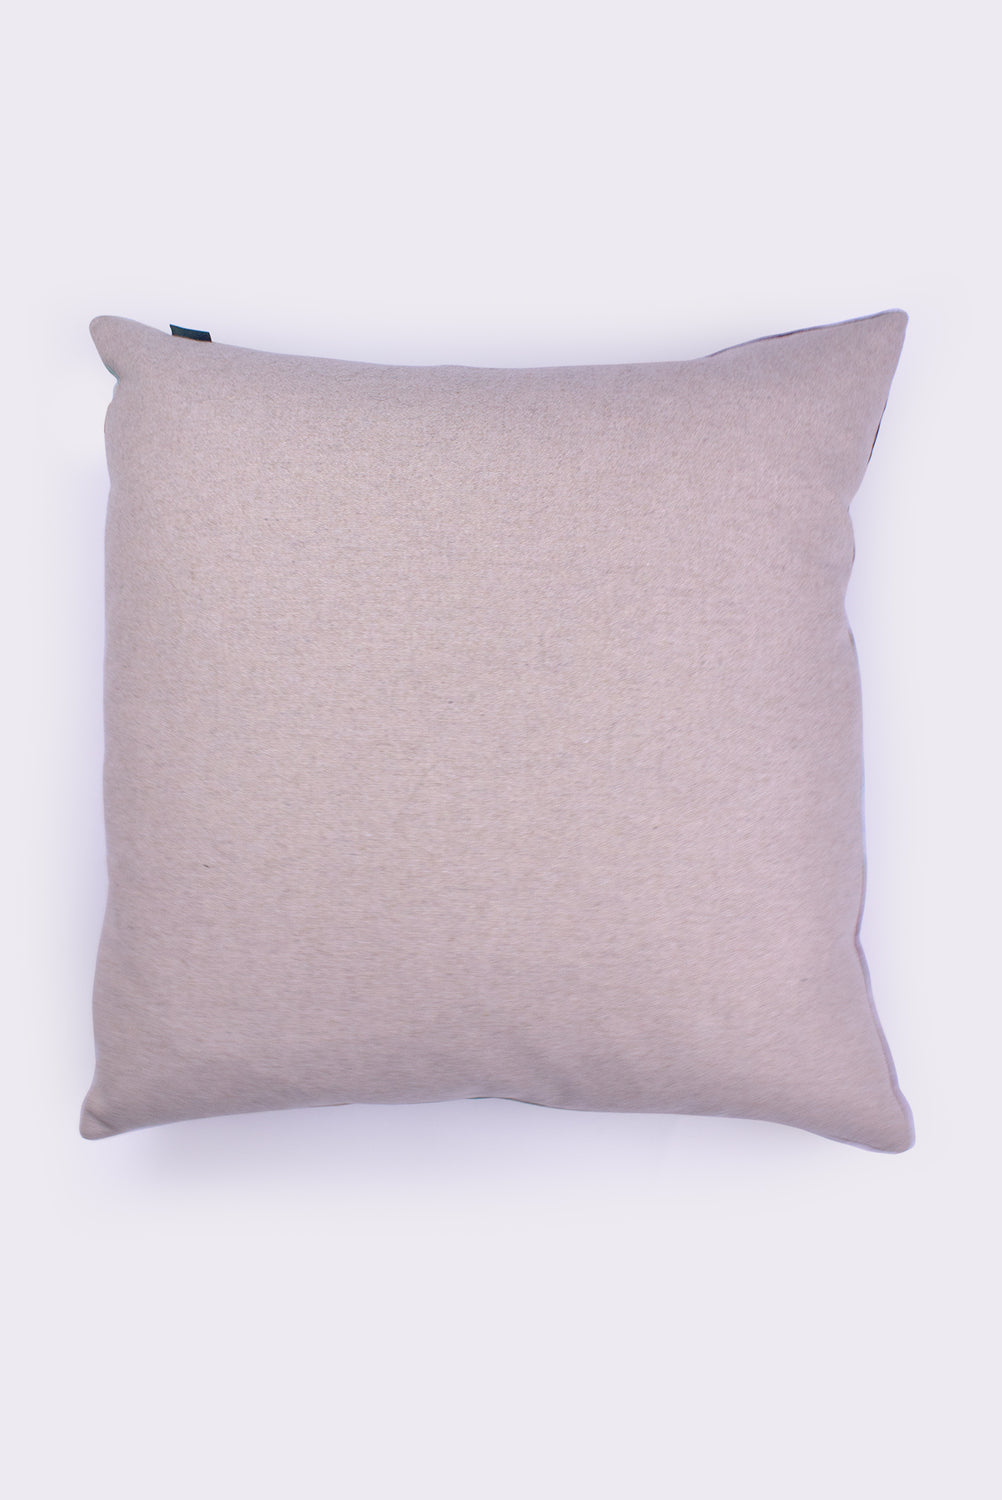 Pillow, Tambora Jade